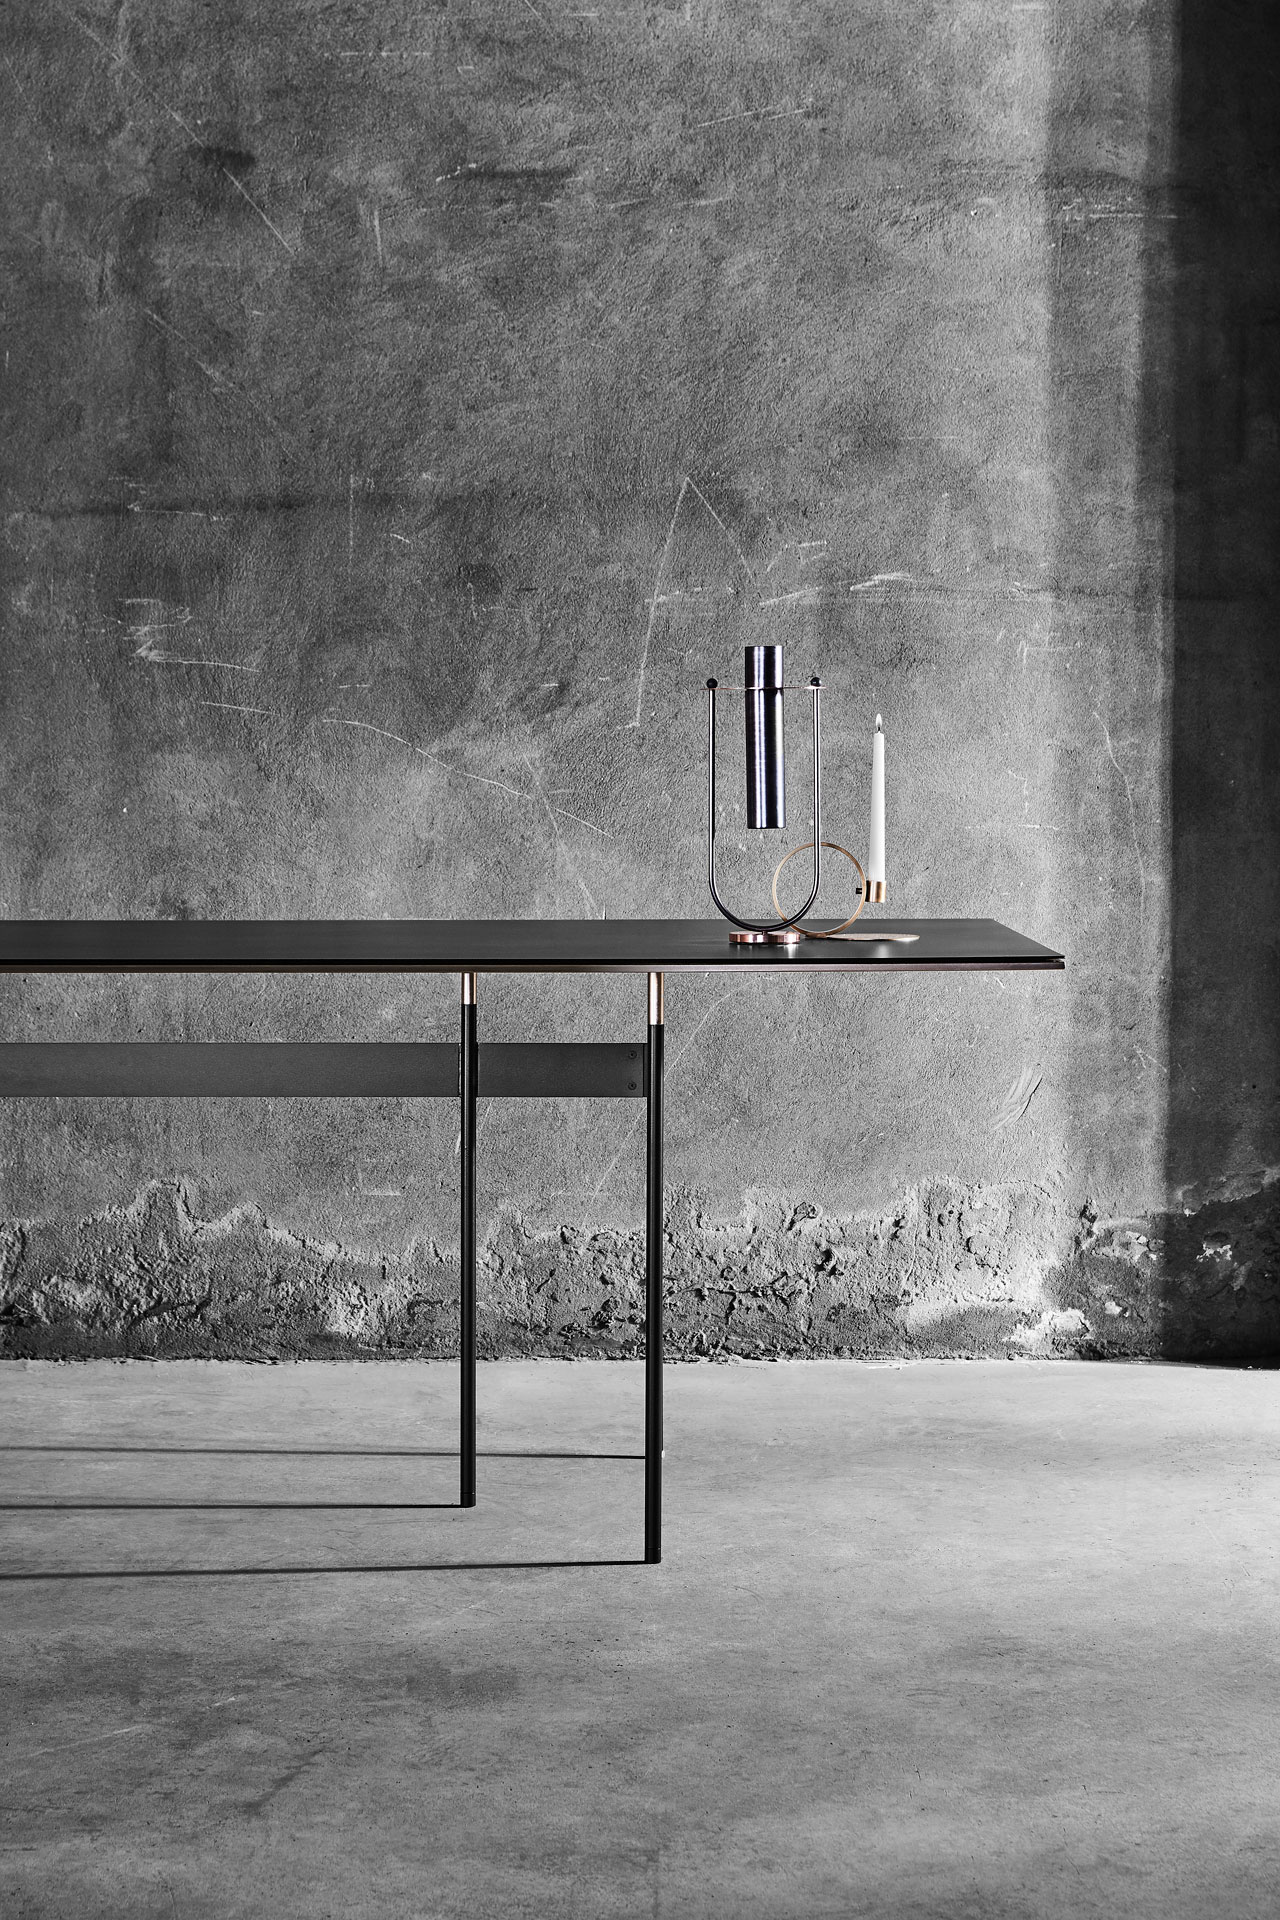 Tartan tableby Simone Bonanni, Elettra vase by Federica Biasi and candle holder Lume by Cara\Davide all designed for MINGARDO.